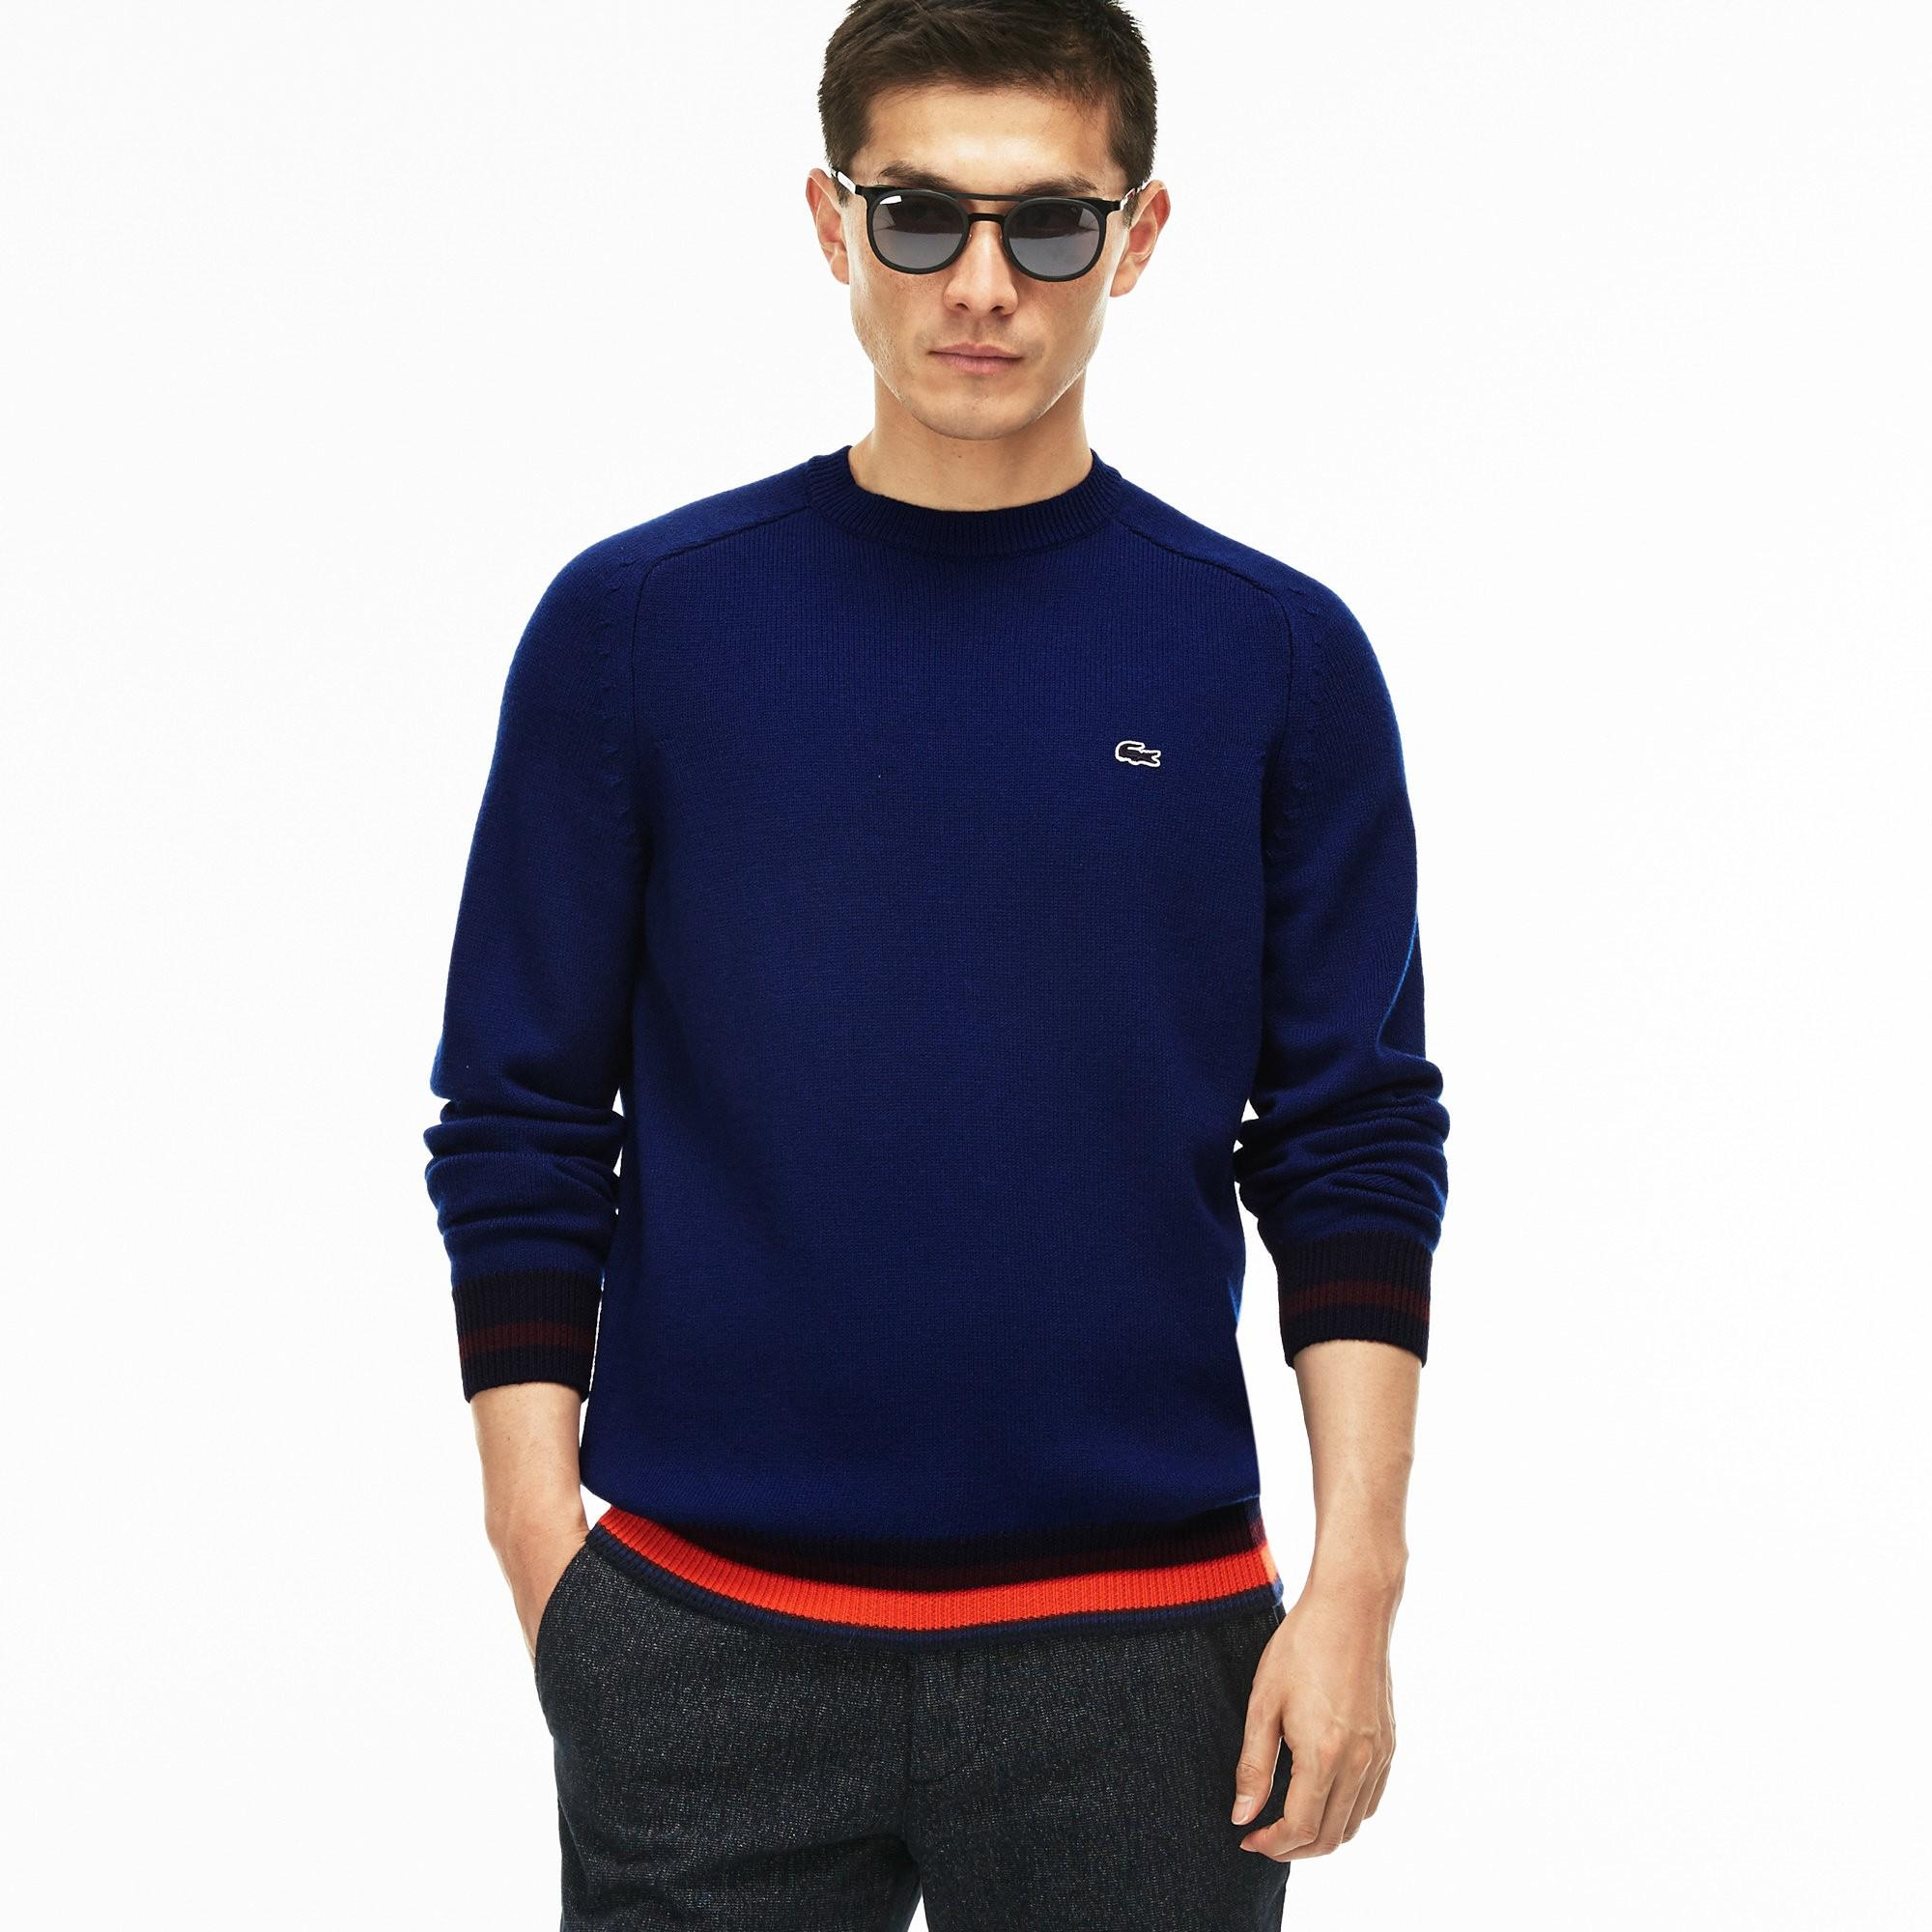 7d41d1af961c Lacoste Men s Crew Neck Wool Jersey Sweater With Striped Accents In Navy  Blue   White